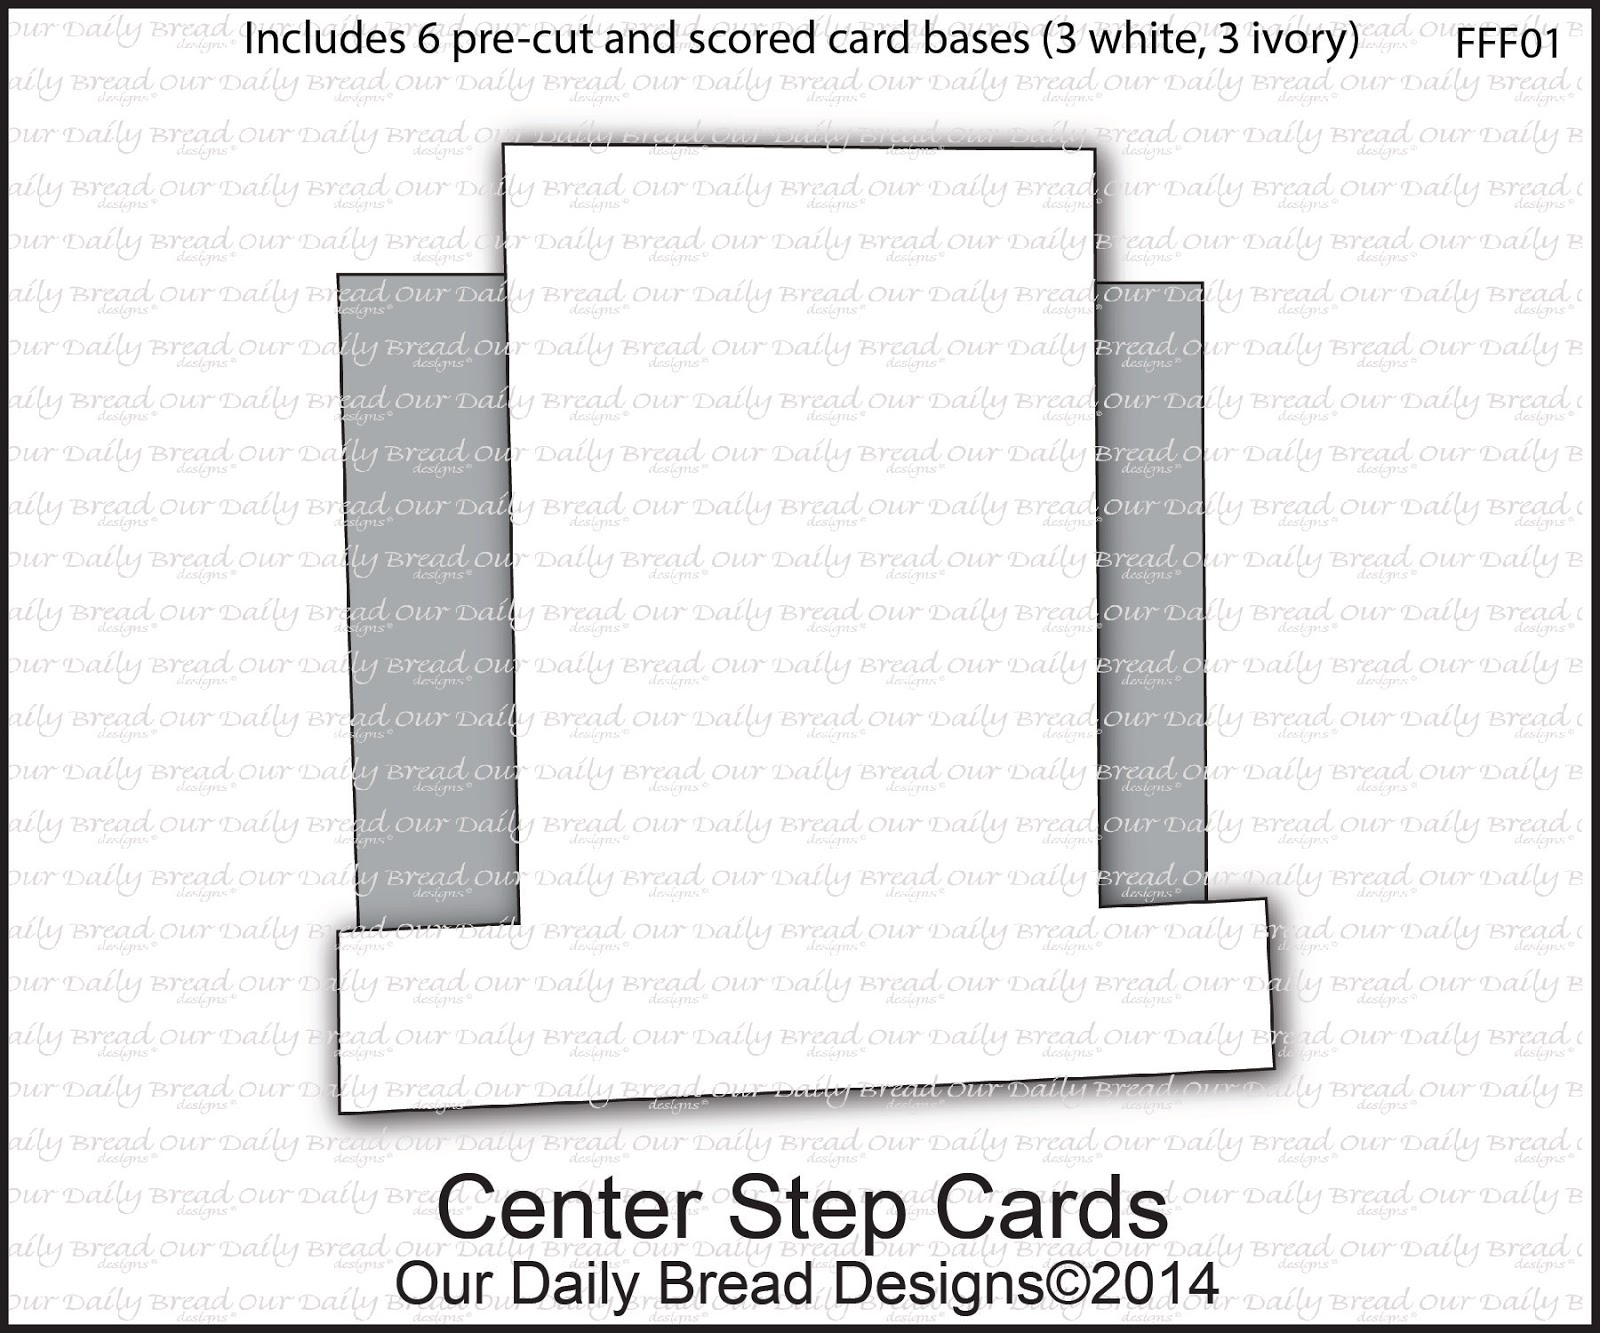 Our Daily Bread Designs Center Step Cards  - Includes 6 pre-cut and scored card bases (3 White, 3 Ivory)